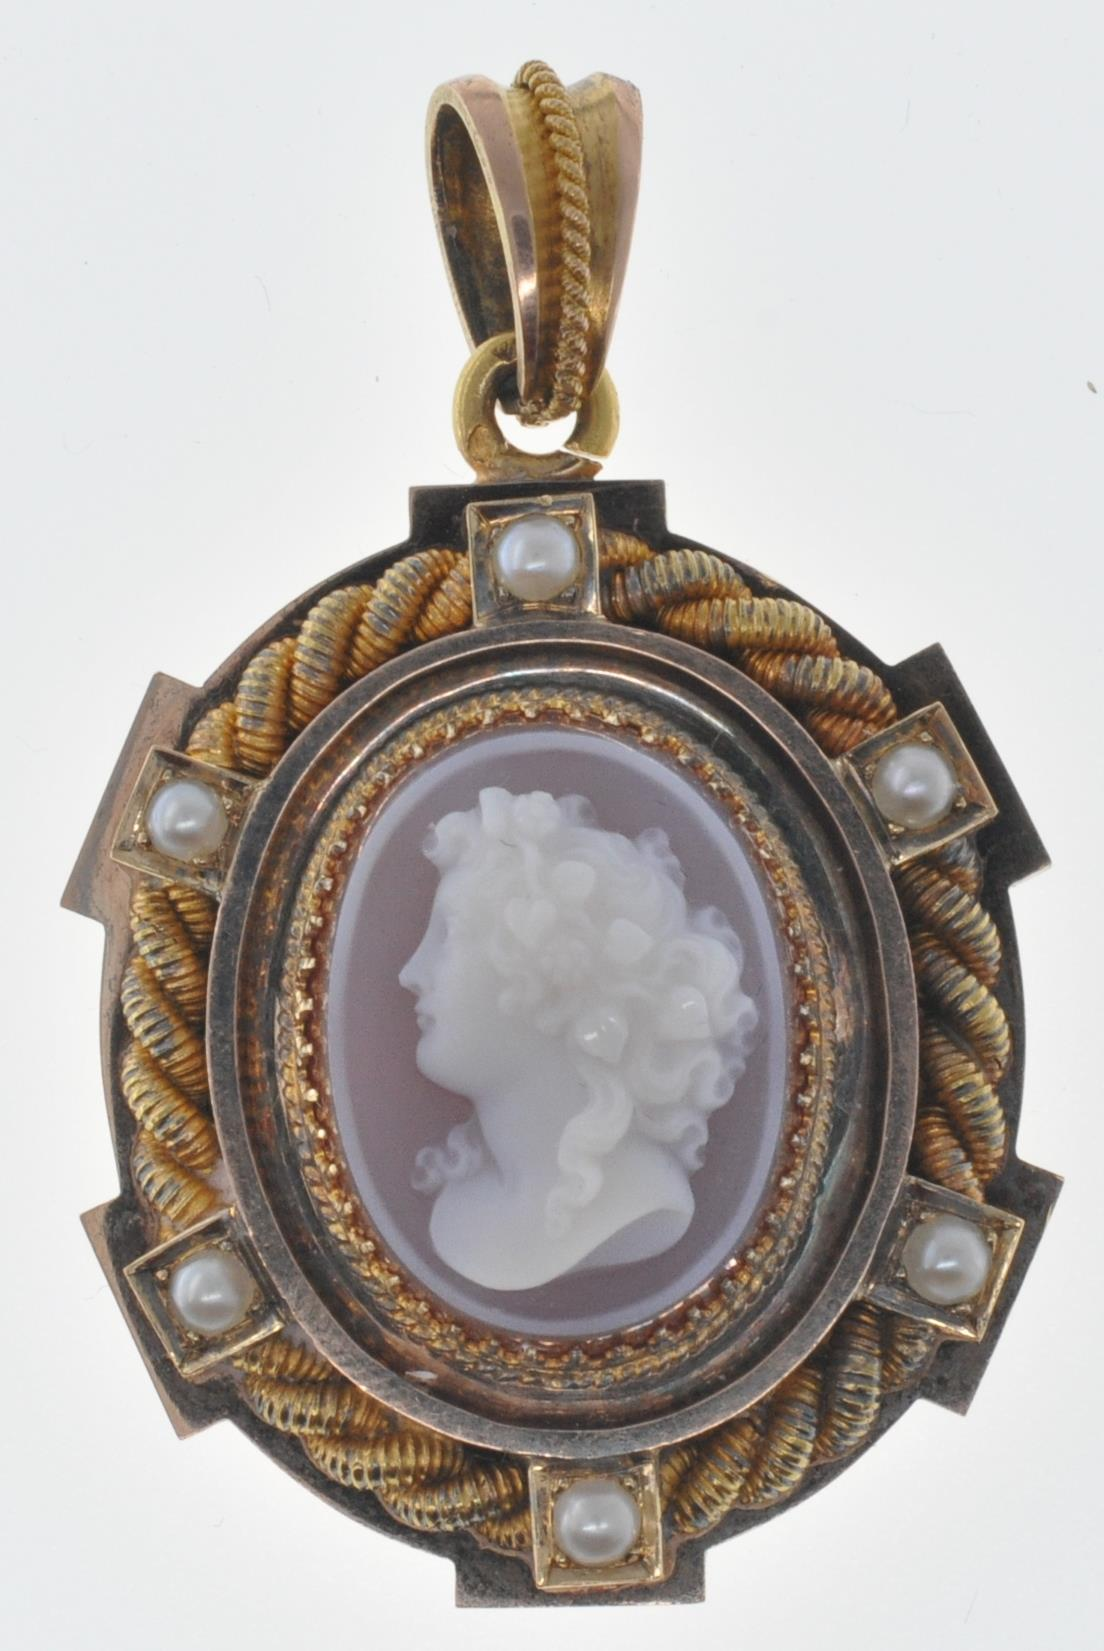 ANTIQUE SEED PEARL AND CAMEO LOCKET PENDANT - Image 2 of 8